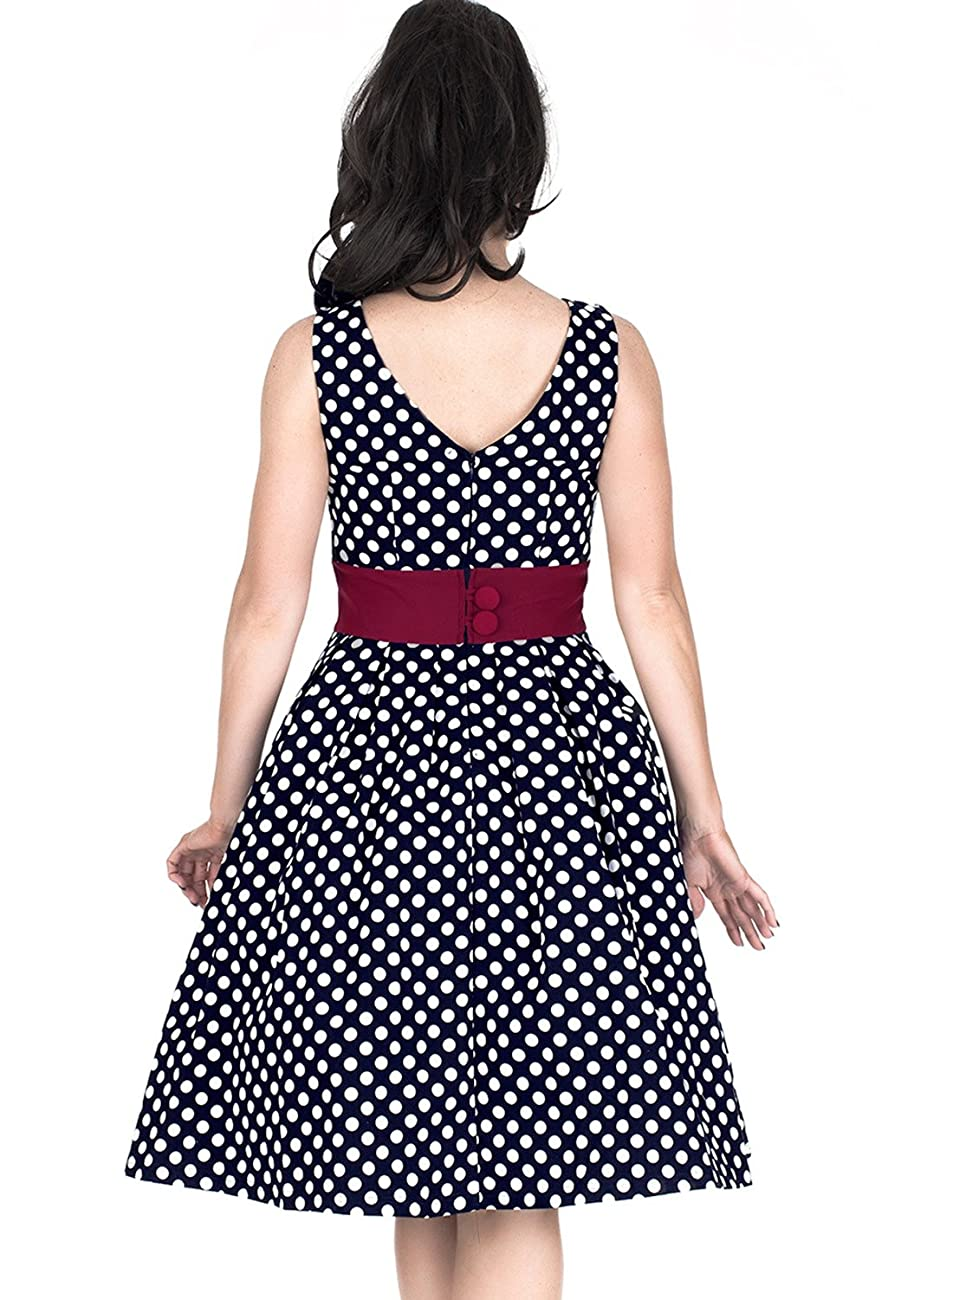 Miusol Women's Vintage Cut Out Polka Dot 1950'S Bridesmaid Swing Dress 1